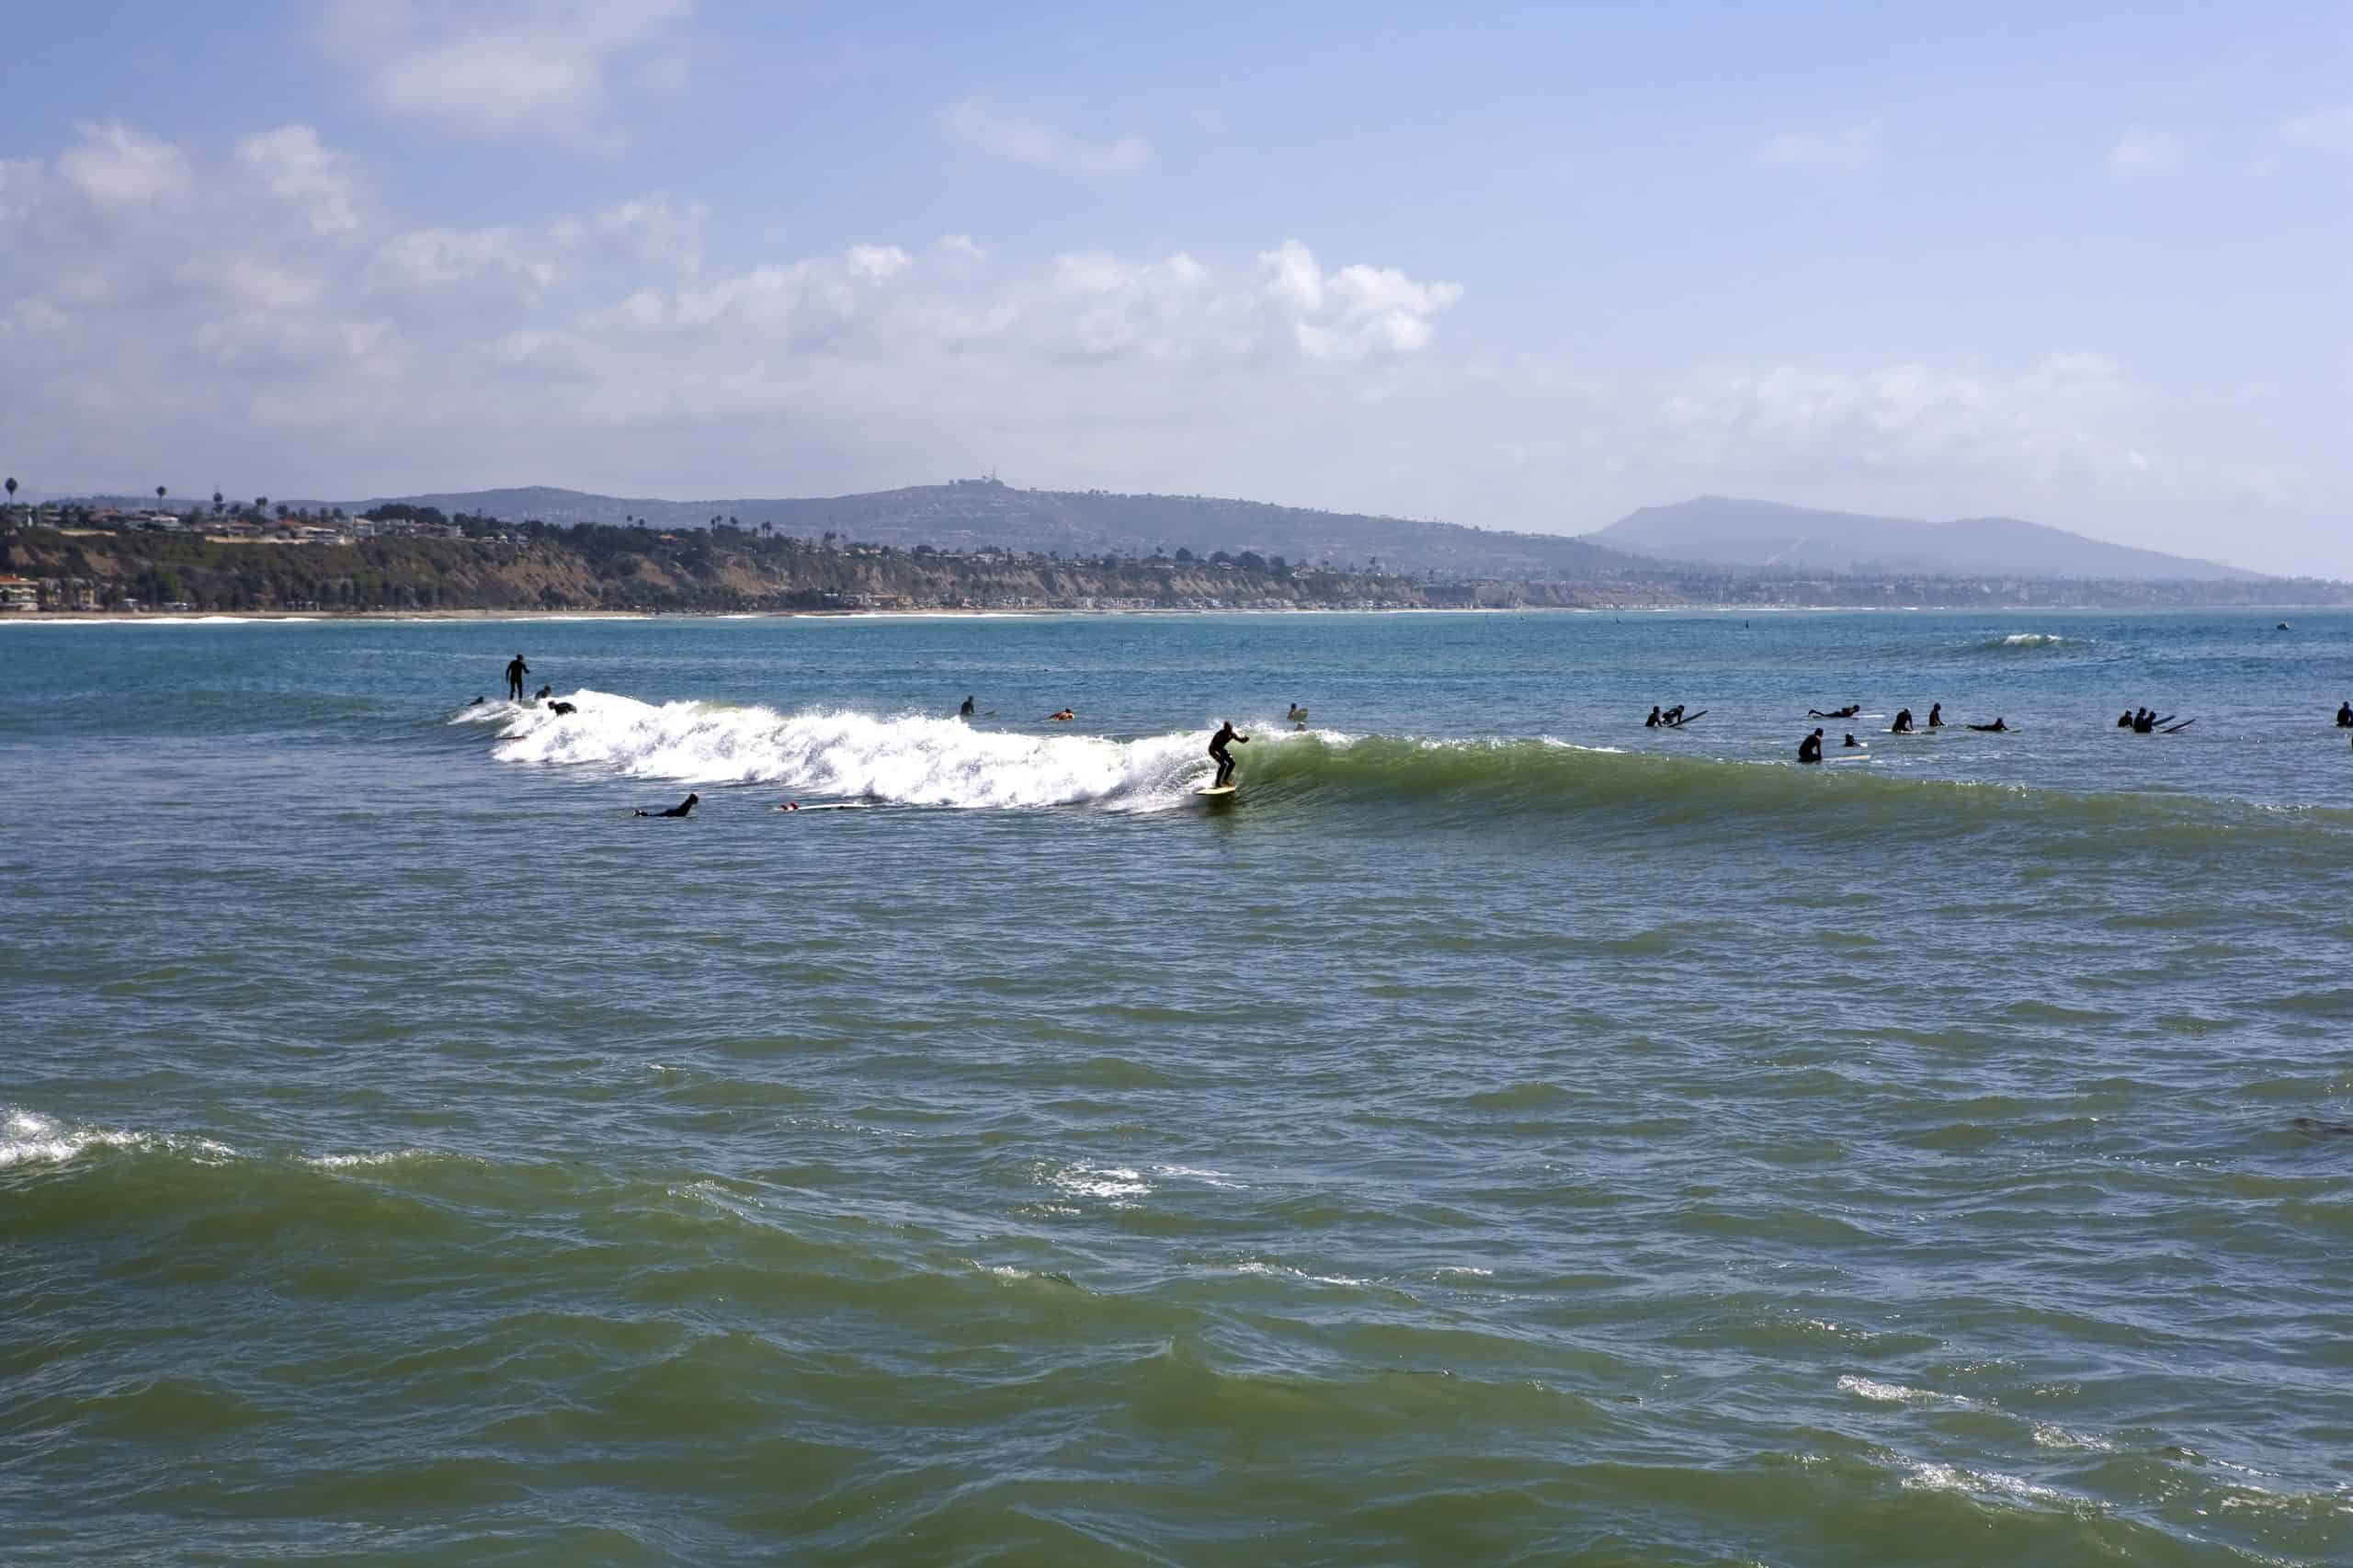 Surfers at Doheny State Beach in Southern California.